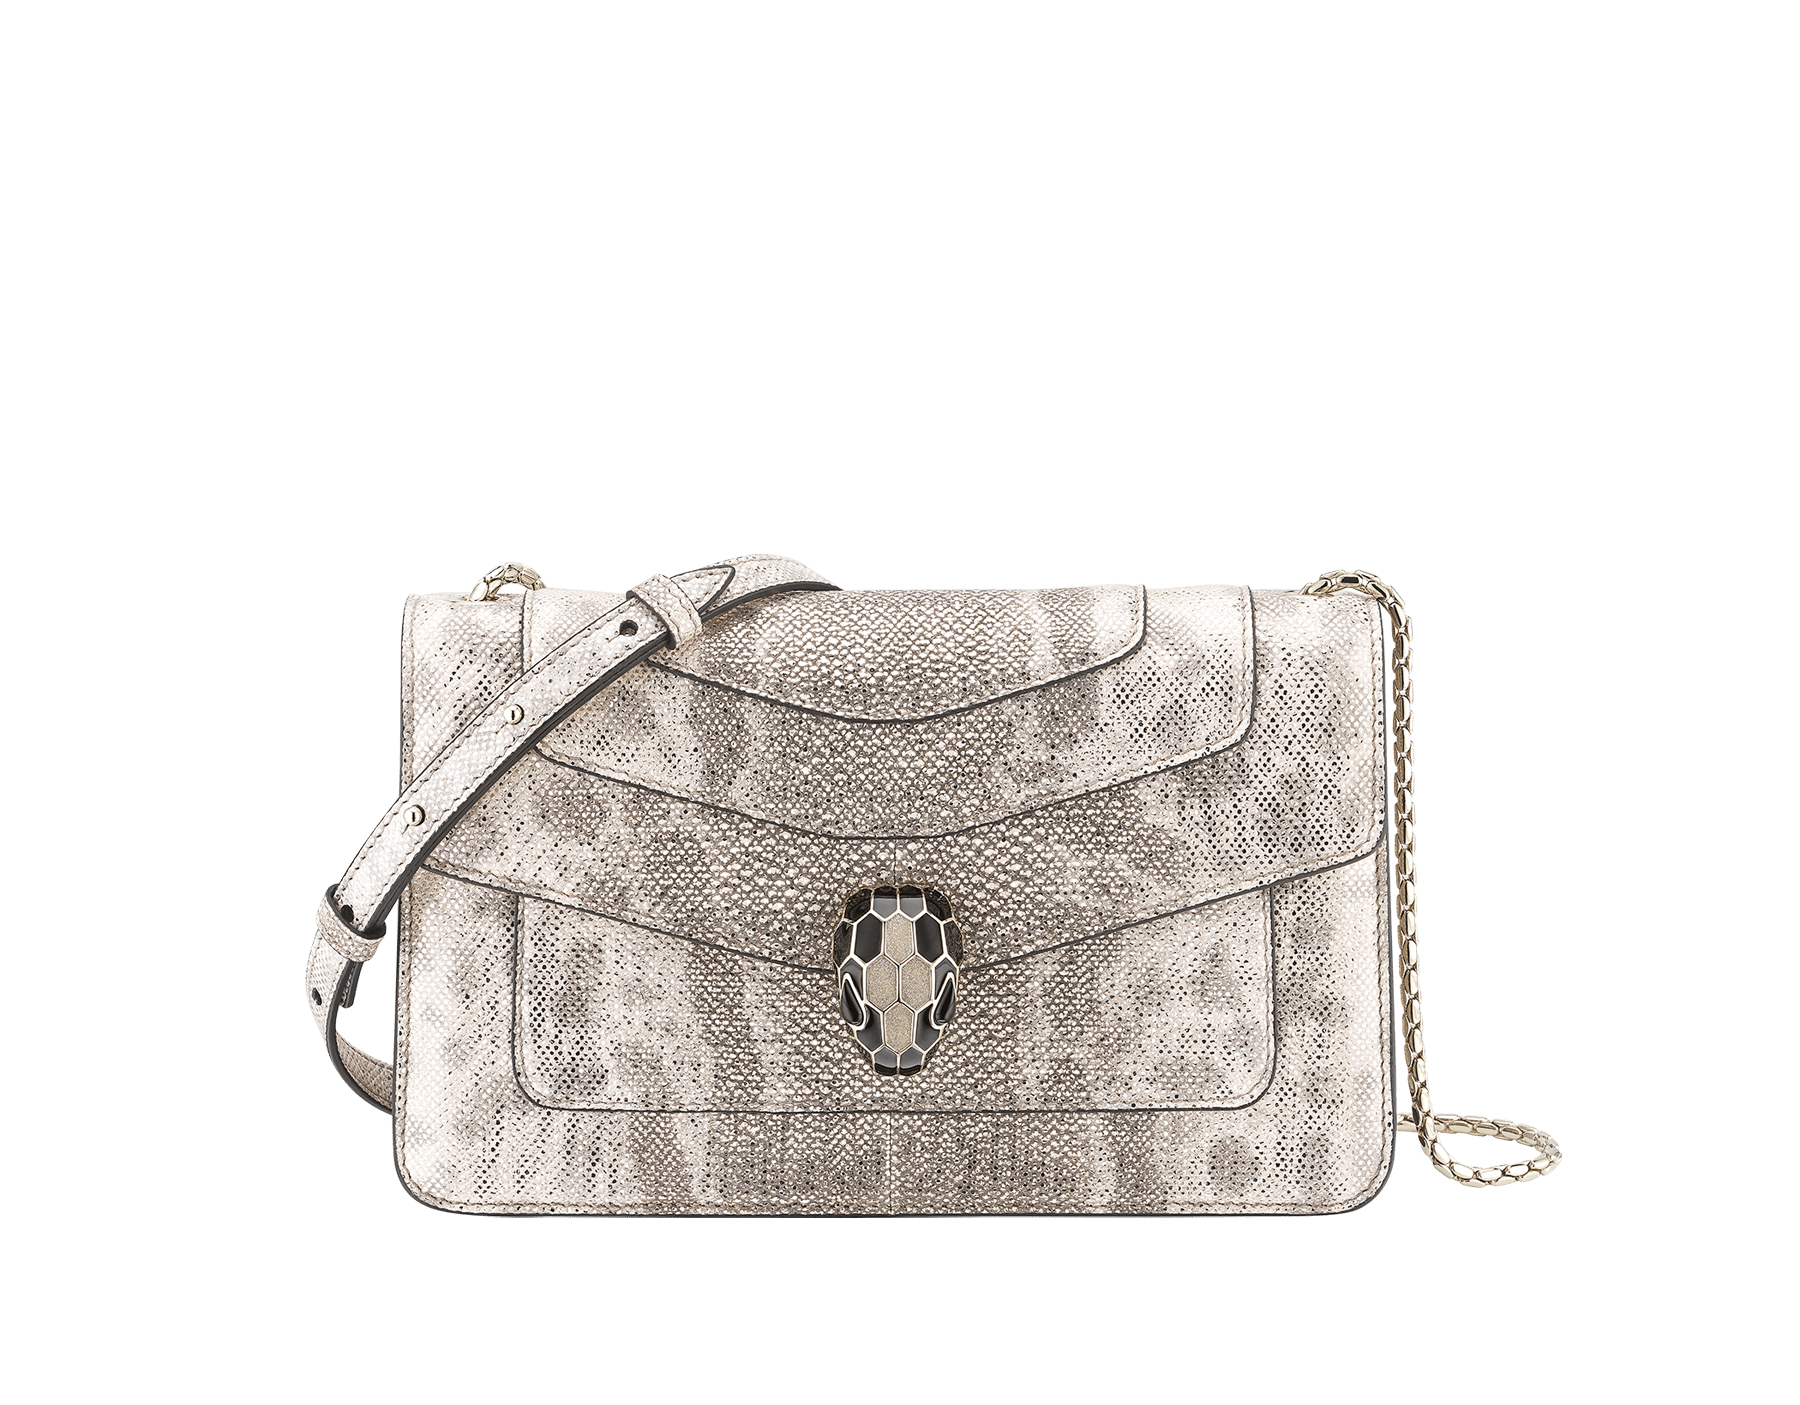 """""""Serpenti Forever"""" crossbody bag in milky opal metallic karung. Iconic snake head closure in light gold-plated brass enriched with black and glitter milky opal and black onyx eyes. 289556 image 1"""